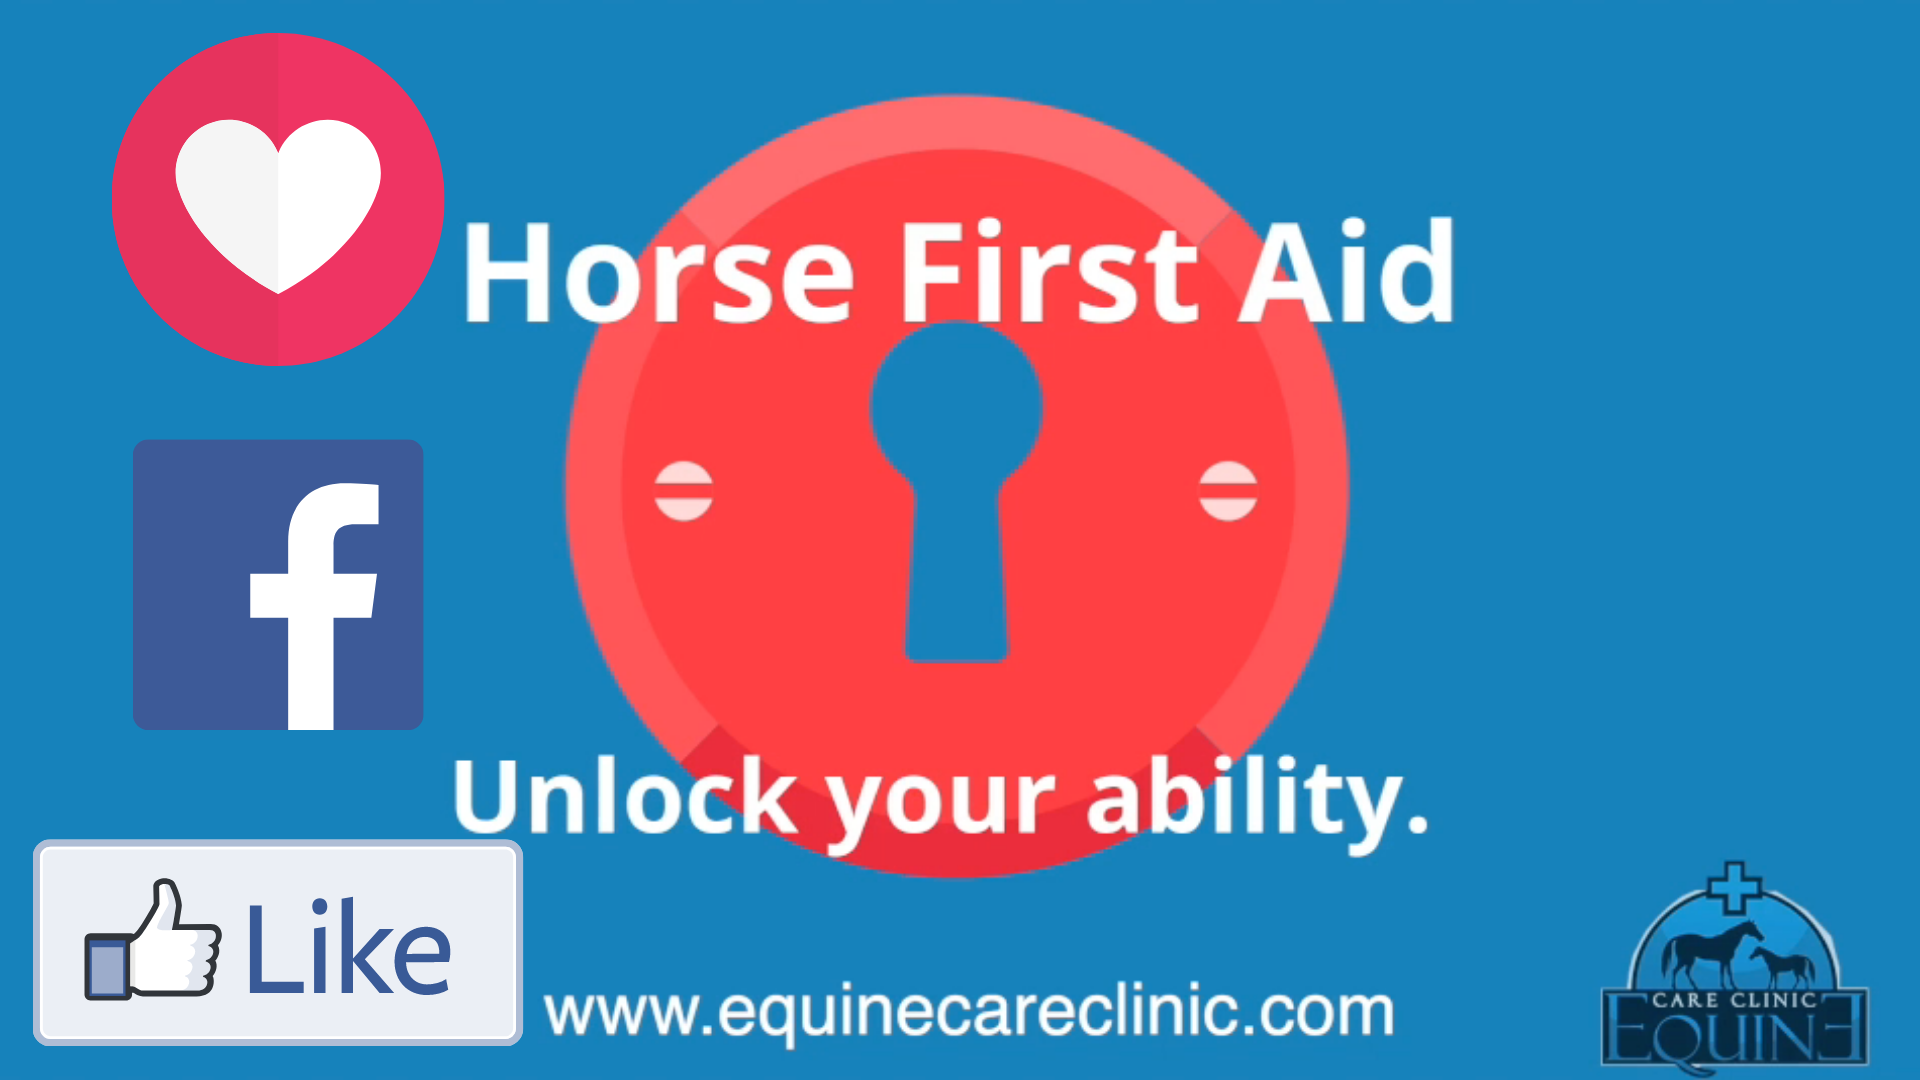 Horse First Aid Group